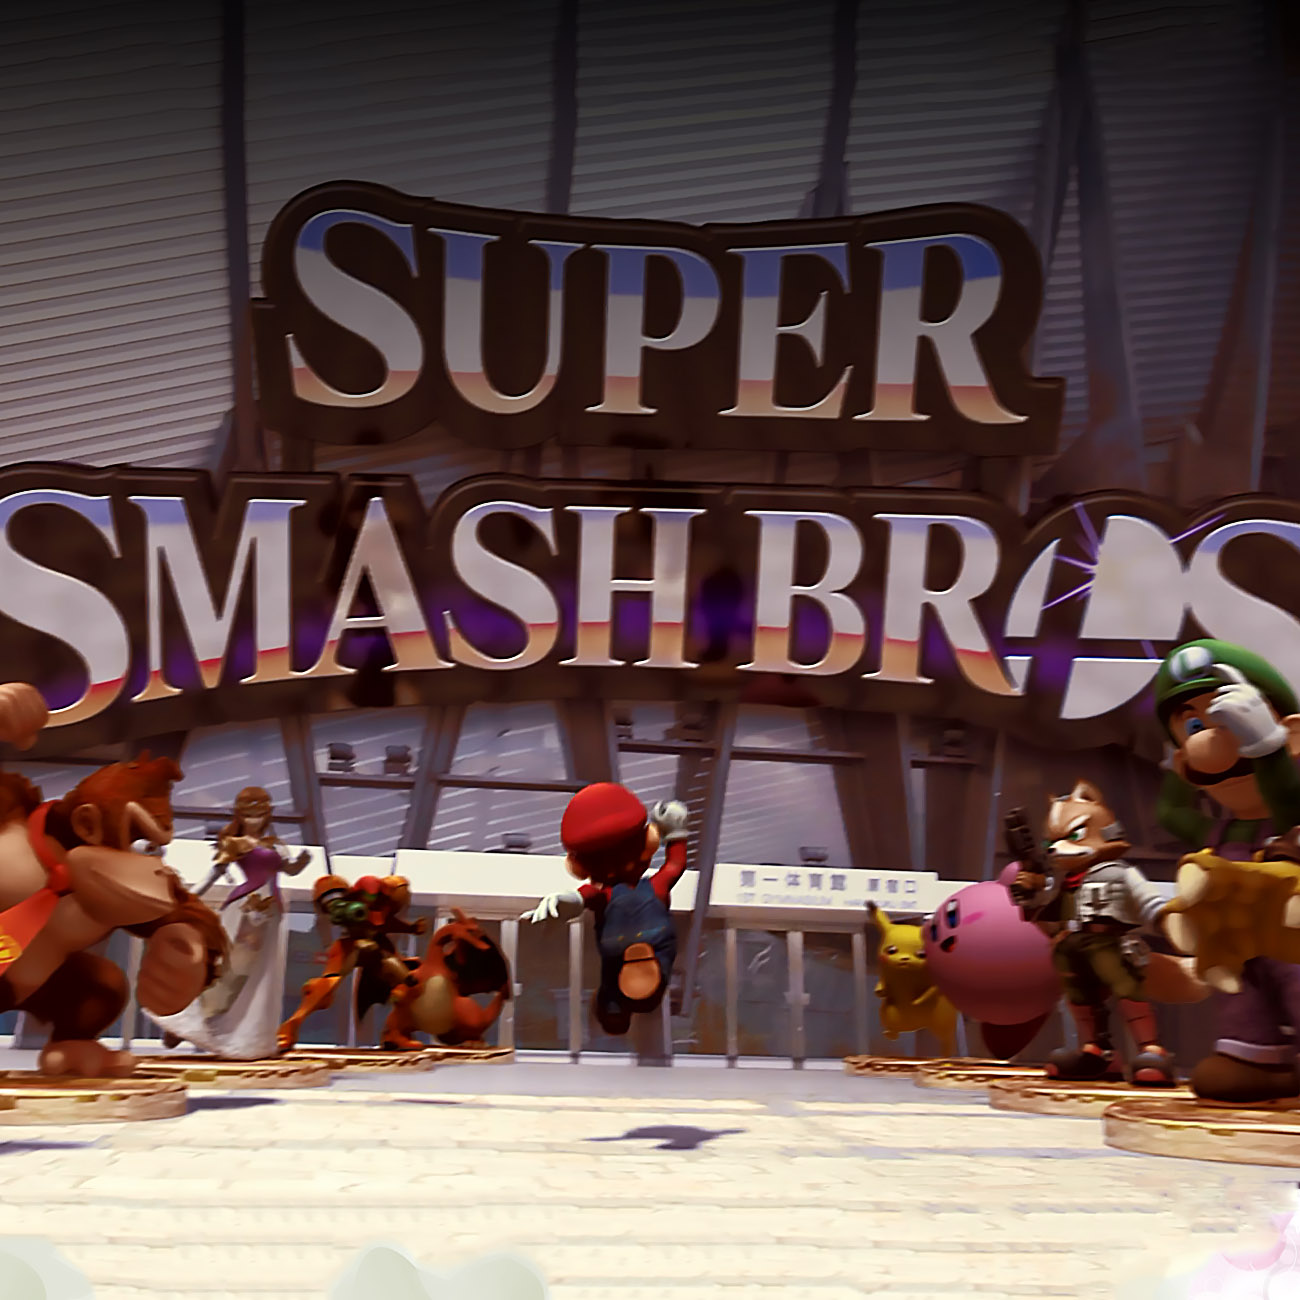 Super Smash Bros. – Mario Jumps into Battle! (Wii U & Nintendo 3DS)